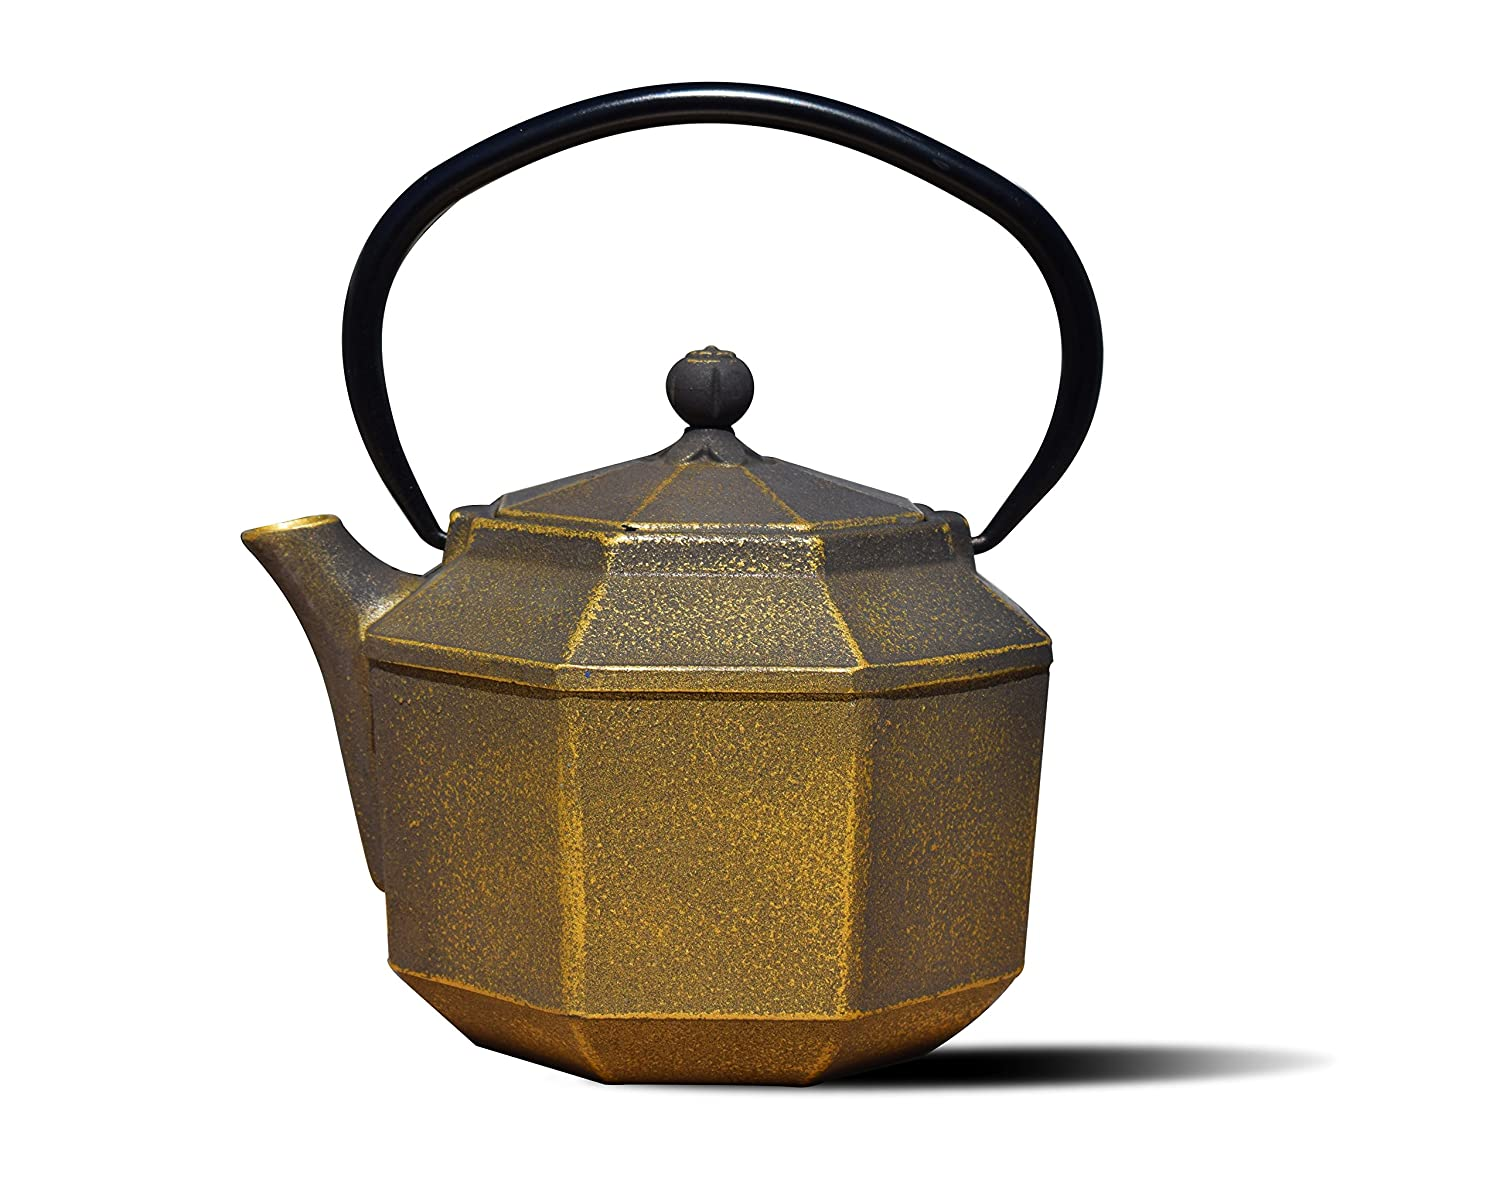 Old Dutch 1068BC Black/Gold Cast IronPagoda Teapot, 28 oz Old Dutch International